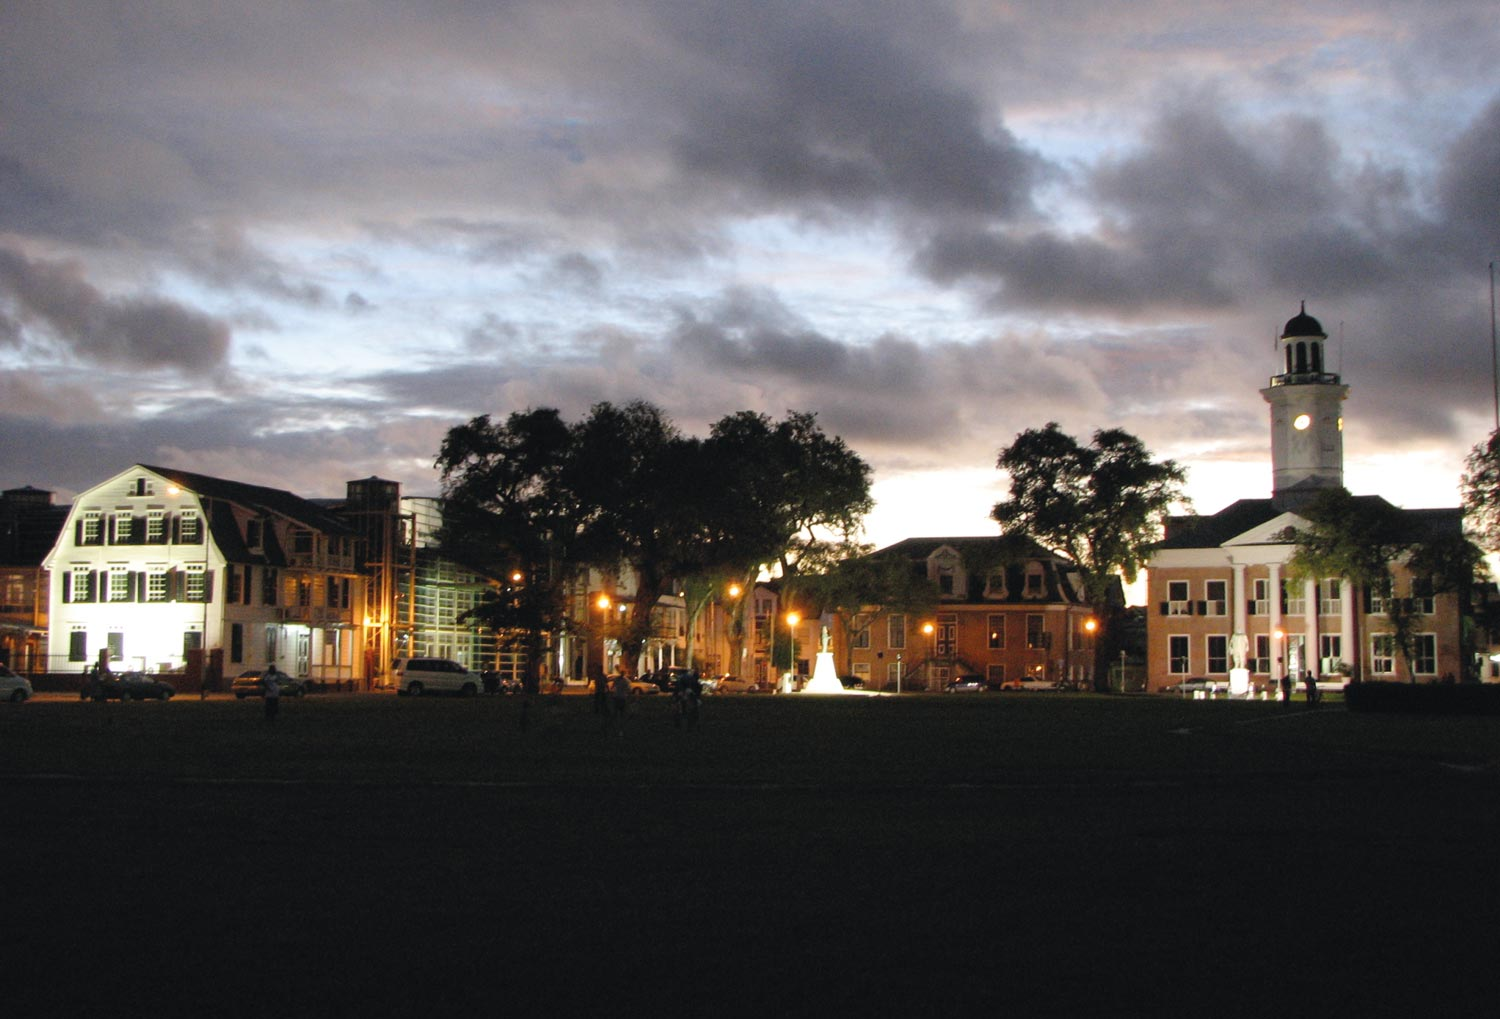 Dusk falls over Independence Square in Paramaribo